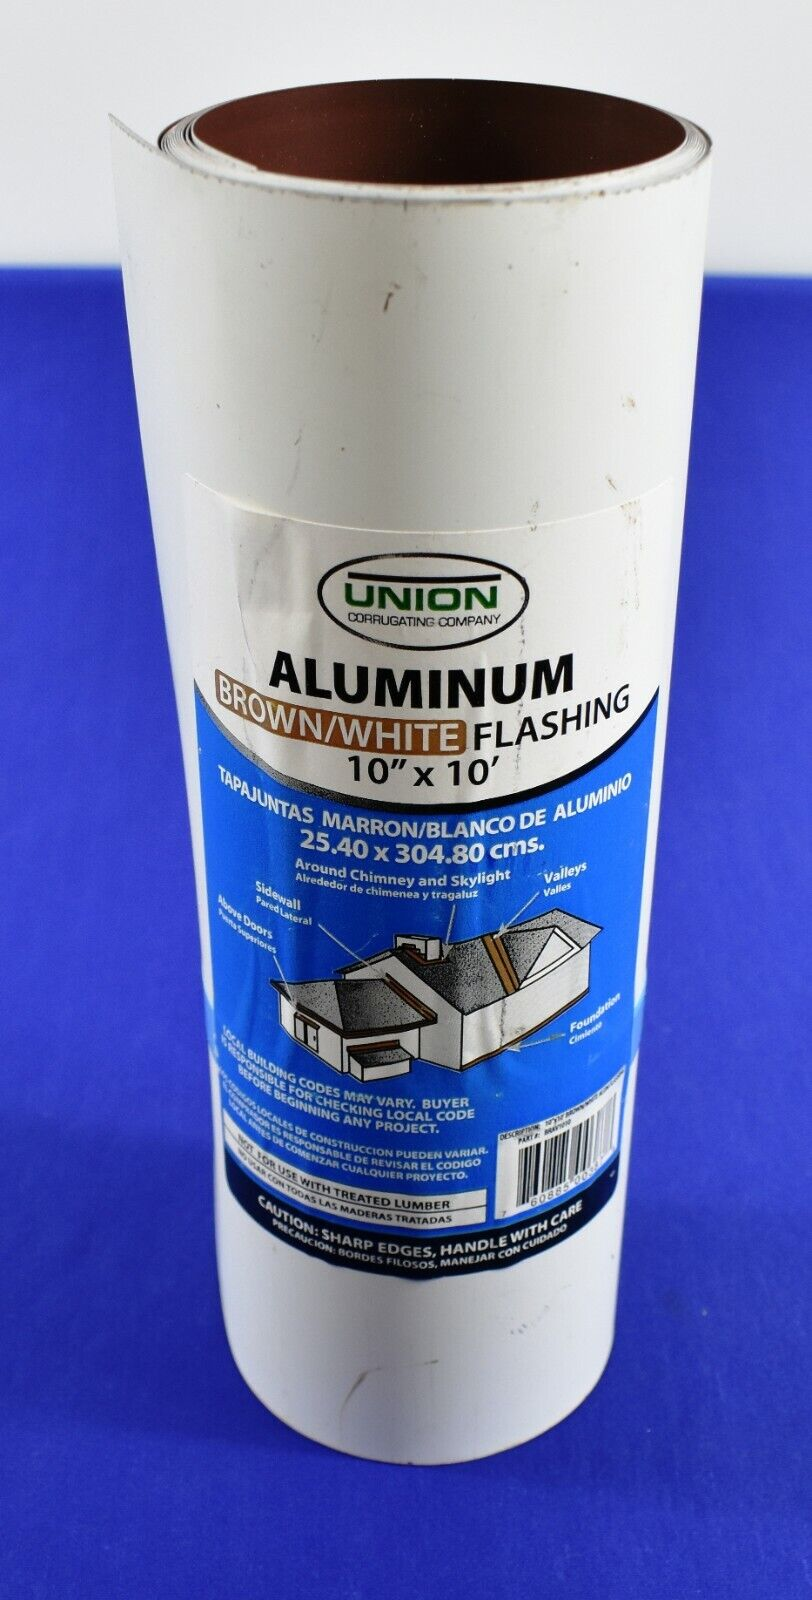 Union Corrugating 10-in X 10-ft Aluminum Roll Brown/White Flashing NOS 3396 - $19.99